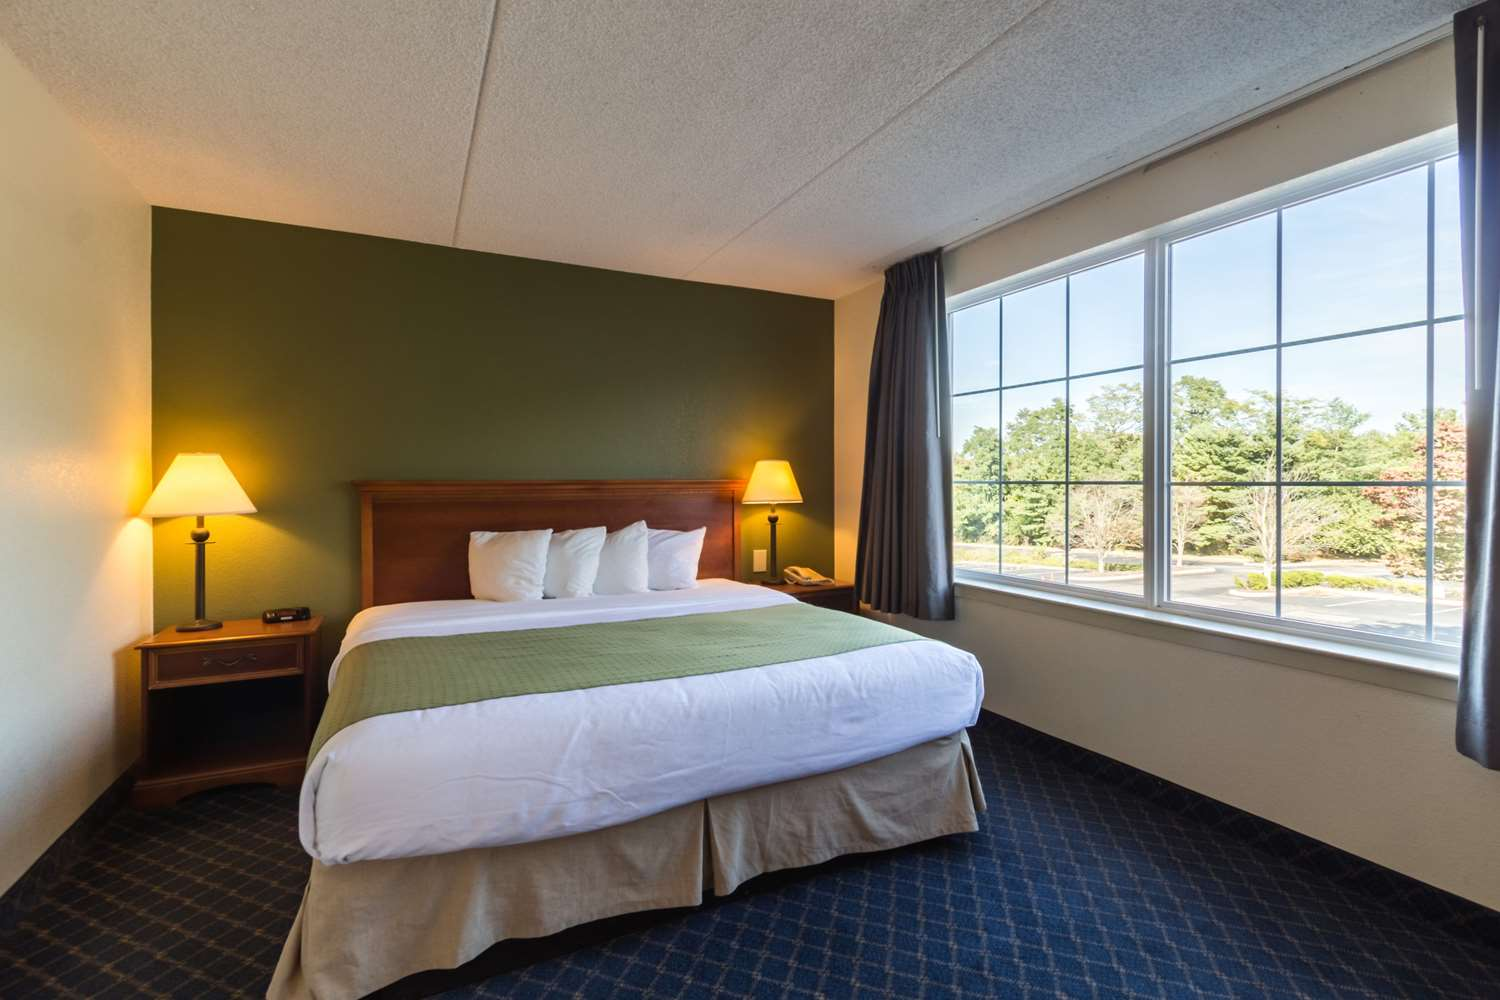 Quality Inn & Suites West Chester, PA - See Discounts